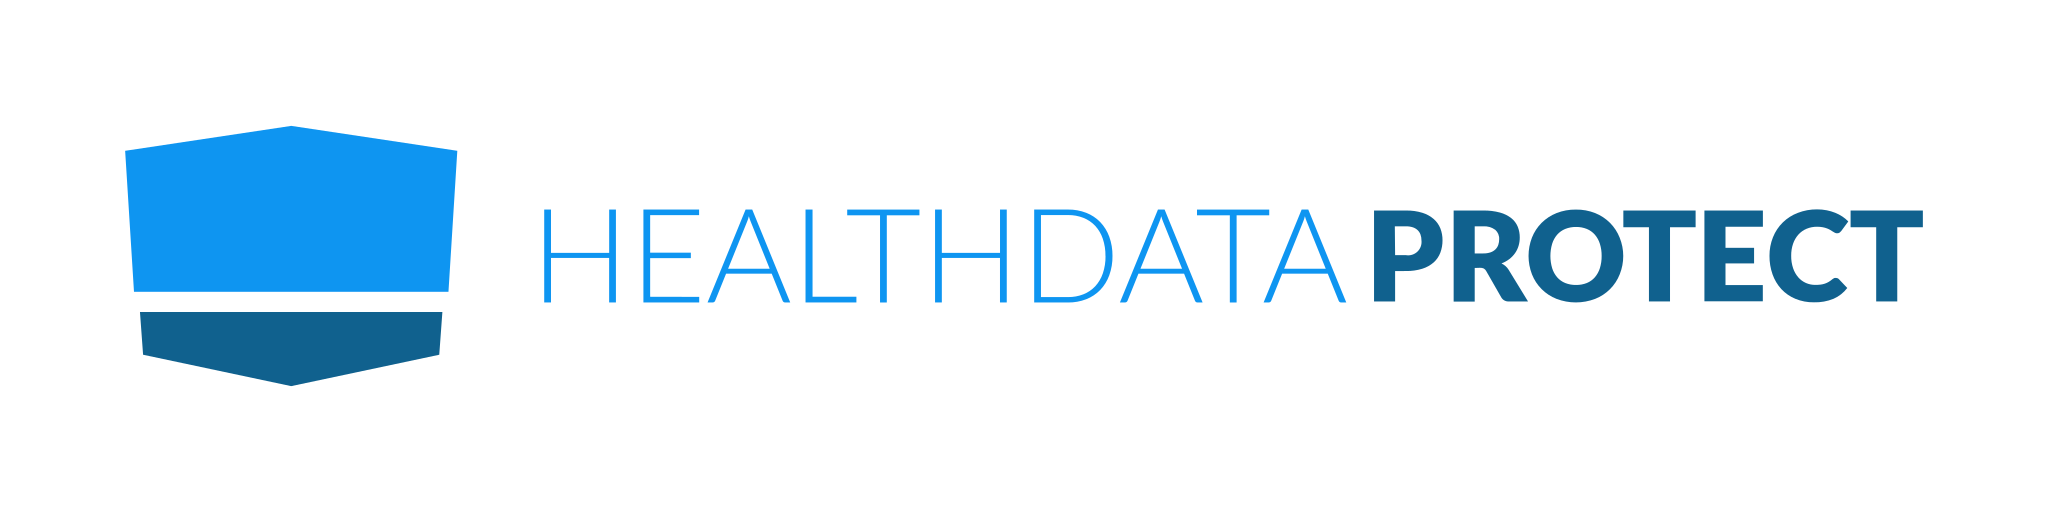 Health-Data-Protect